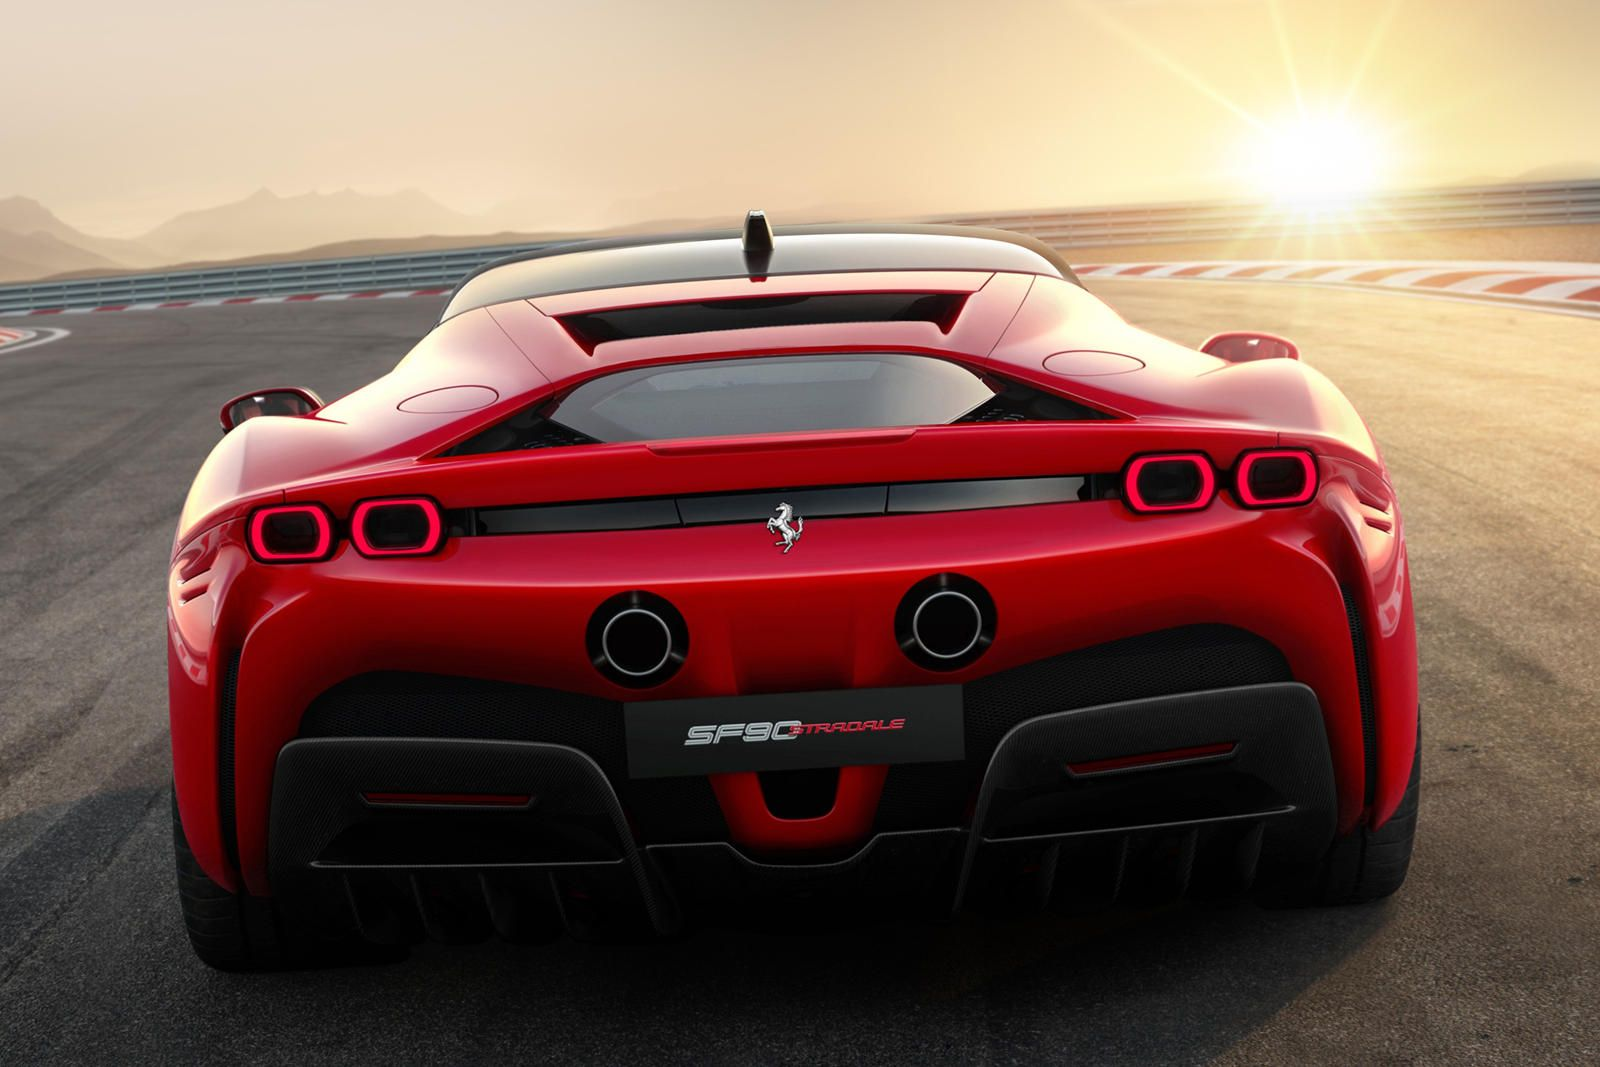 Ferrari Reminds The World Why It Builds The Best Supercars Today S Example The Sf90 Stradale In 2020 New Ferrari Ferrari Laferrari Sports Car